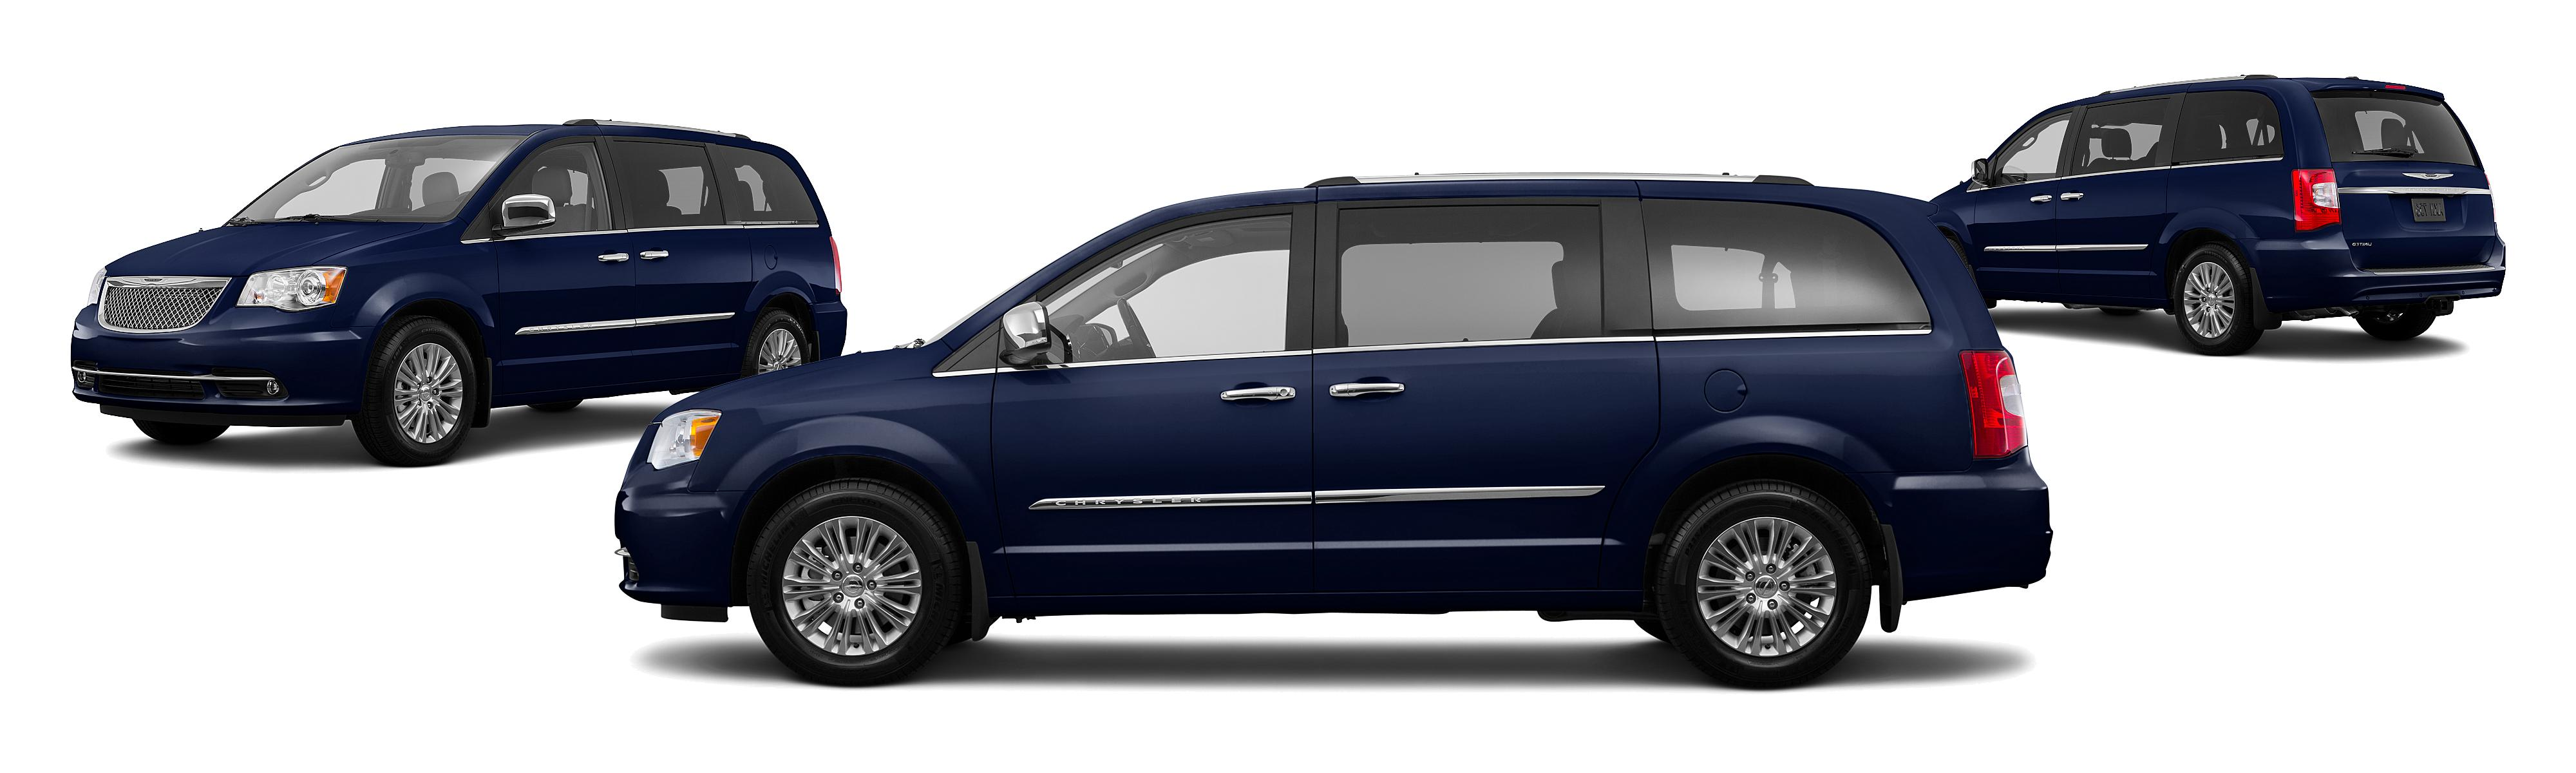 2017 Chrysler Town And Country Limited Platinum 4dr Mini Van Research Groovecar